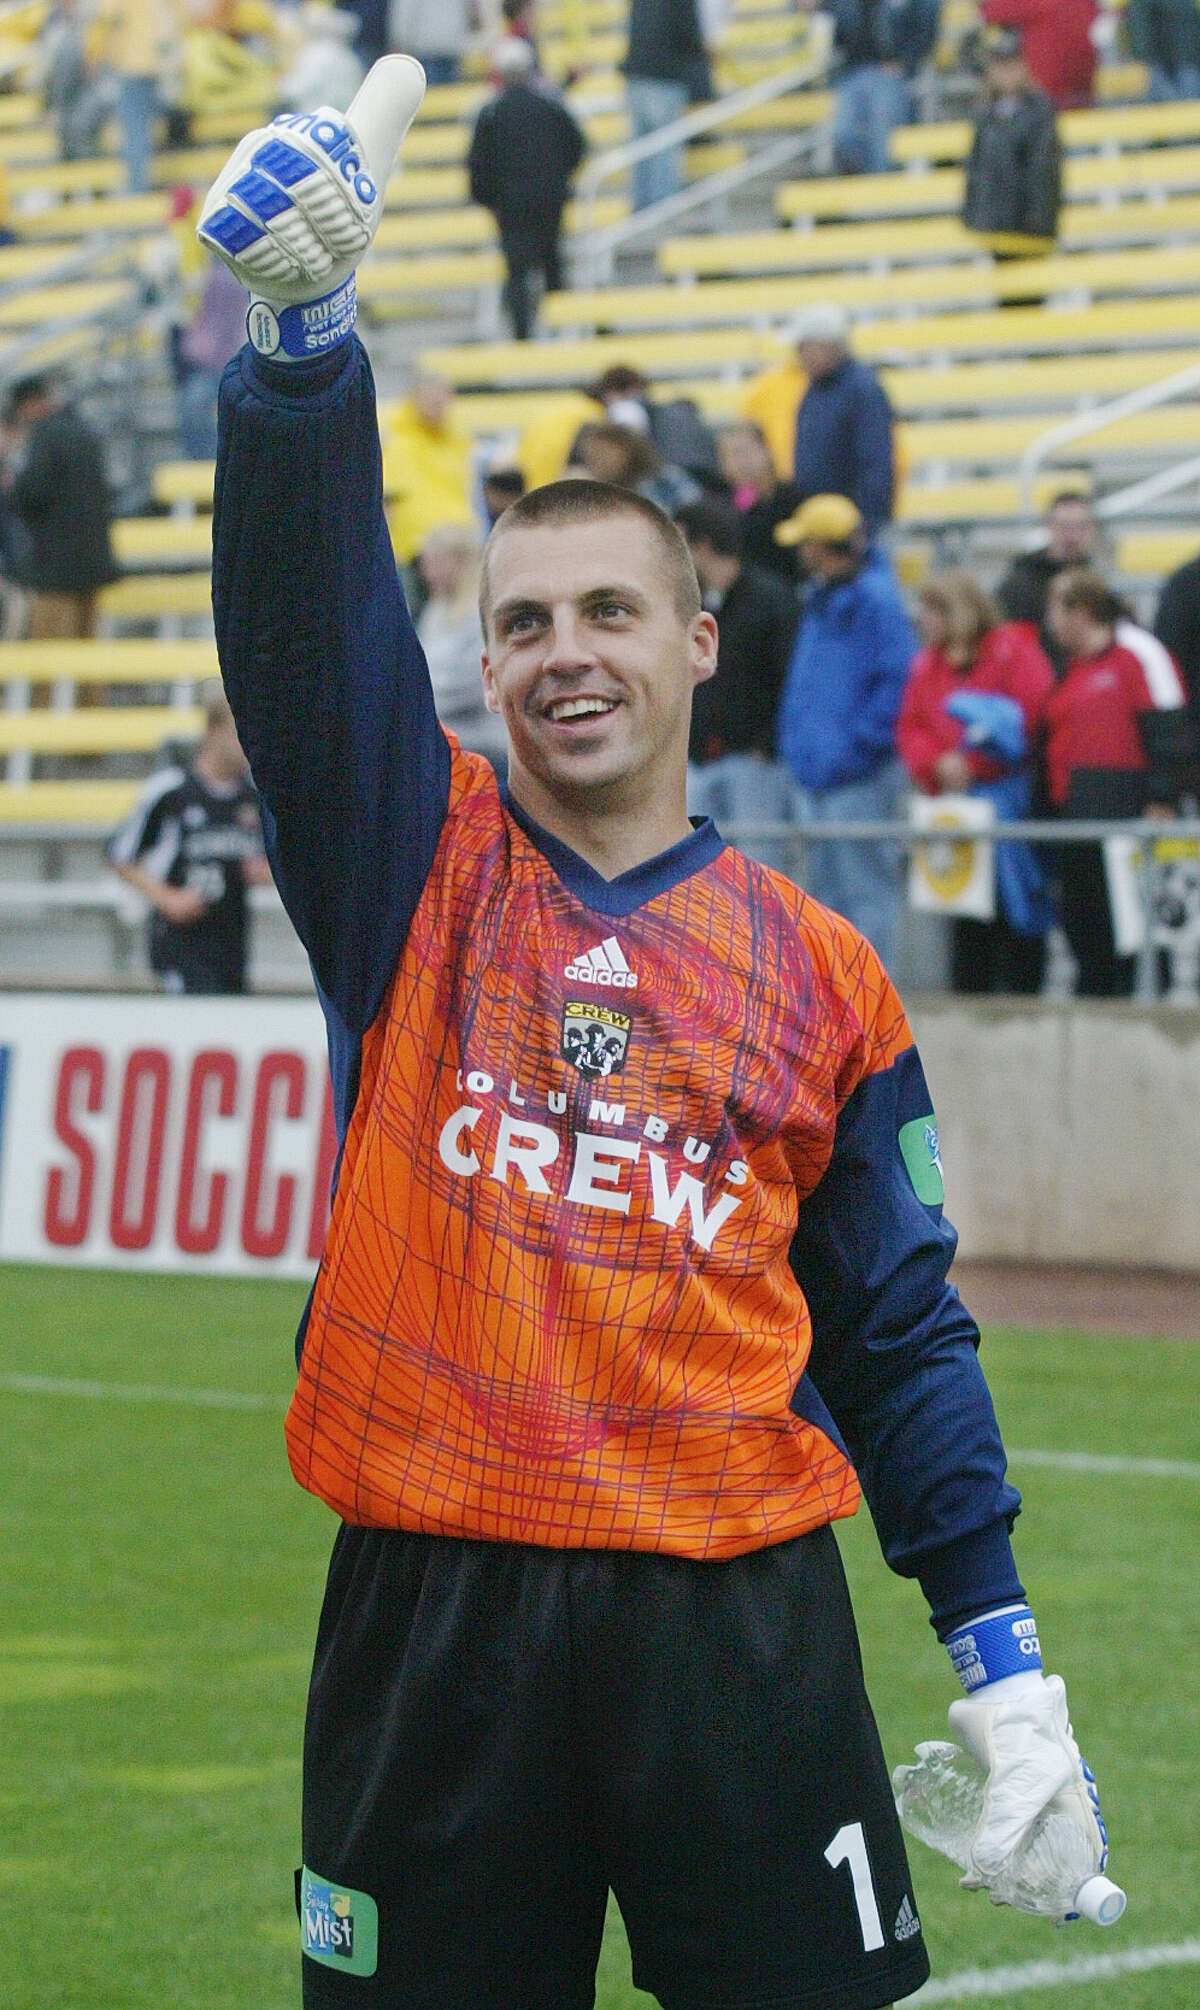 (NCL CREW LAURON MERZ 15MAY04) Crew goal keeper Jon Busch, 1, acknowledges the fans after beating the New England Revolution at Crew Stadium, May 15, 2004. This was the 5th anniversary for the Crew Stadium. (Dispatch photo by Neal C. Lauron)